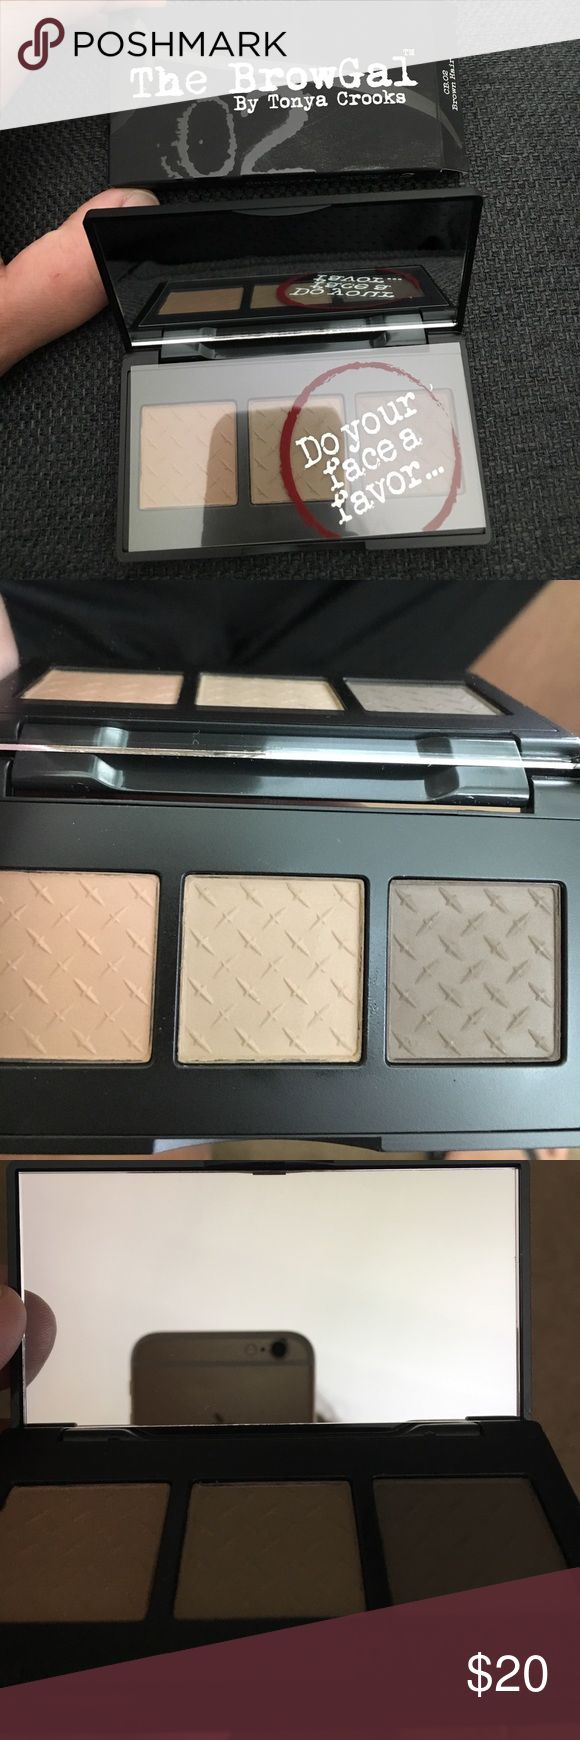 The Brow Gal (Brow Palette) New. Still in box. Never used. Meant for people with brown hair. Sephora Makeup Eyebrow Filler